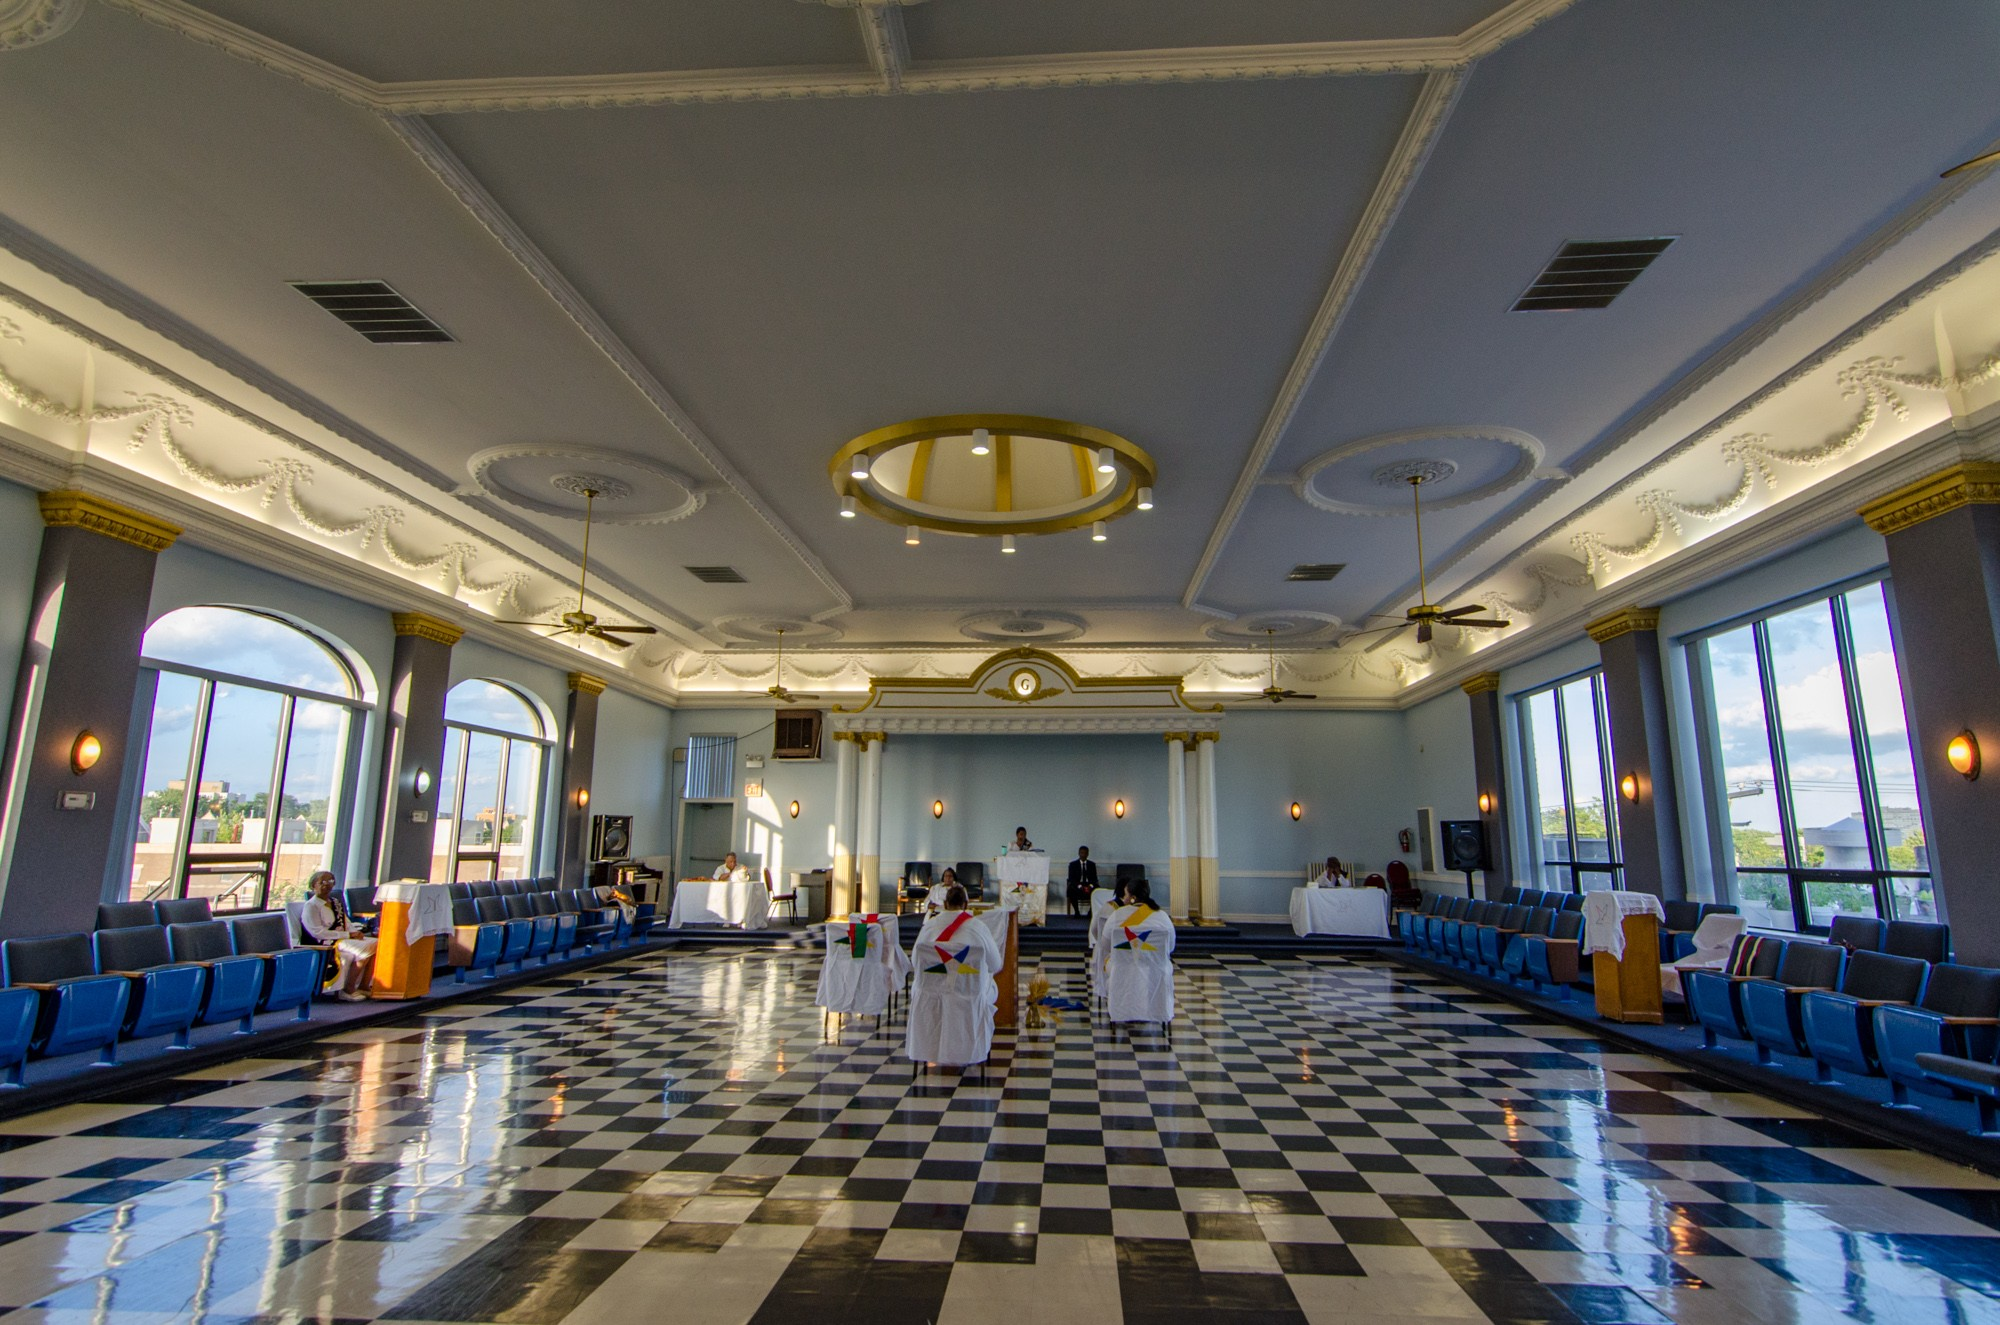 Most worshipful prince hall grand lodge masonic temple sites photo by eric allix rogers view sciox Images